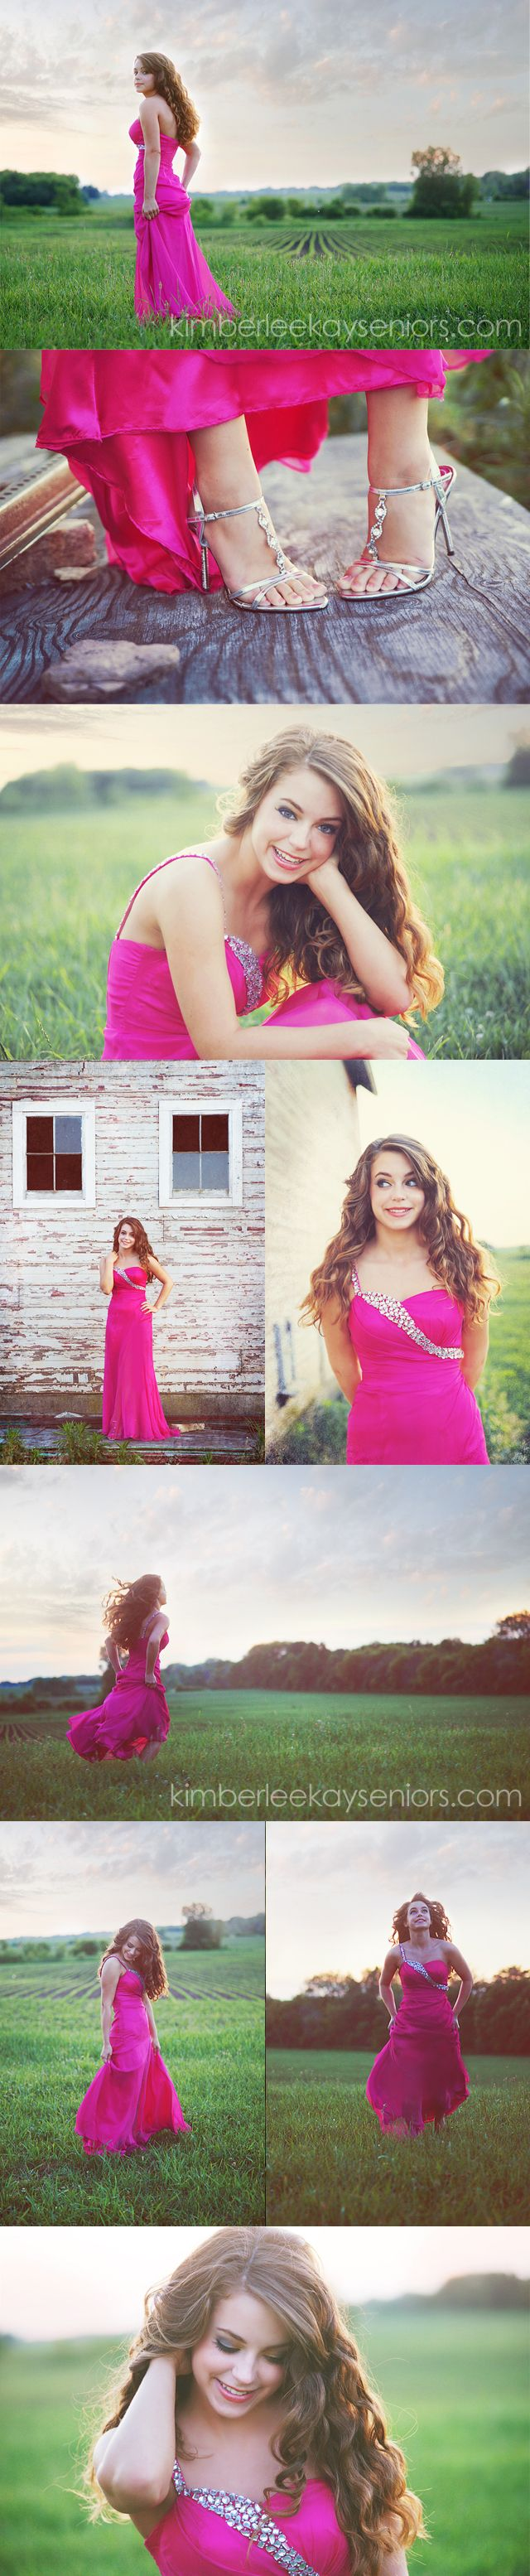 be a princess, wear your prom dress again! Cute senior option.